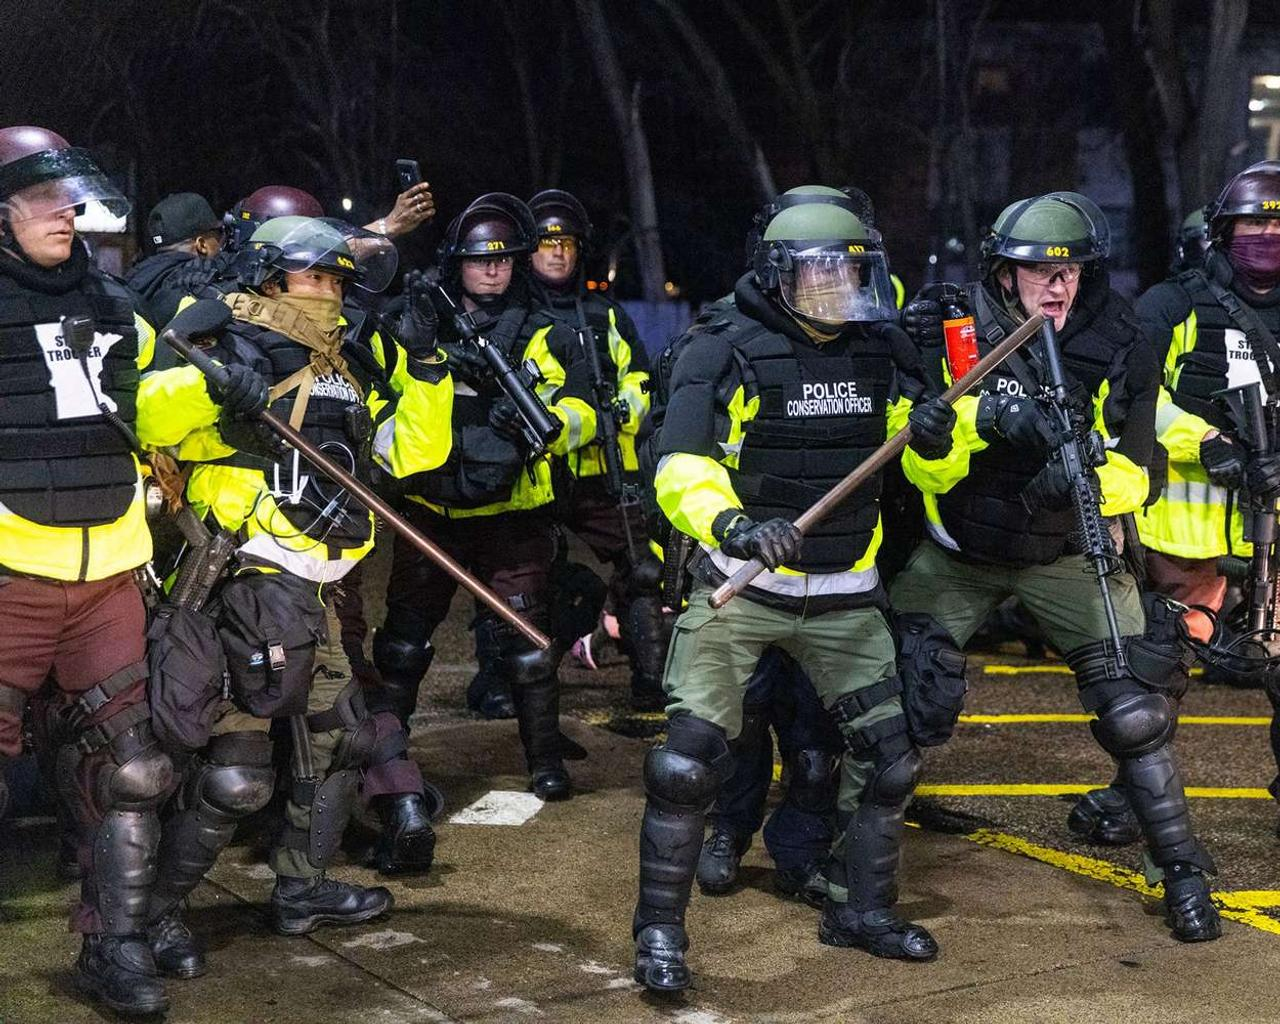 Protests erupt in US cities over police violence as riot declared in Portland